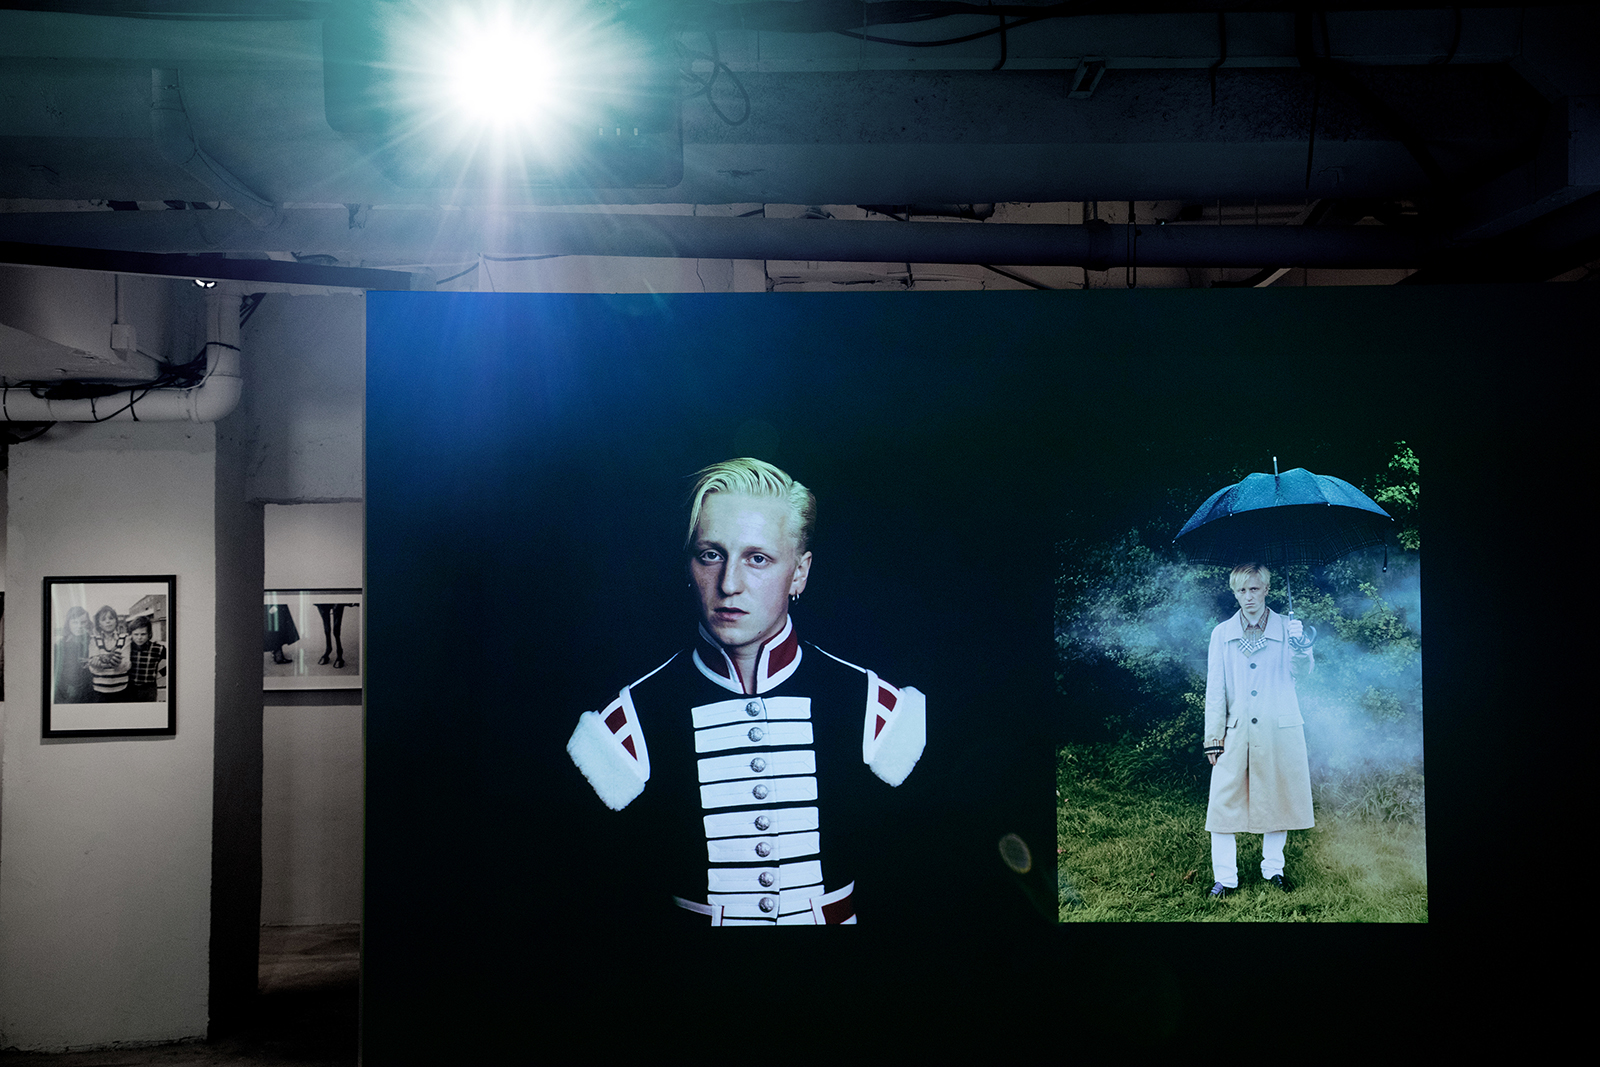 Burberrys-Here-We-Are-photography-exhibition-in-Hong-Kong_003.jpg